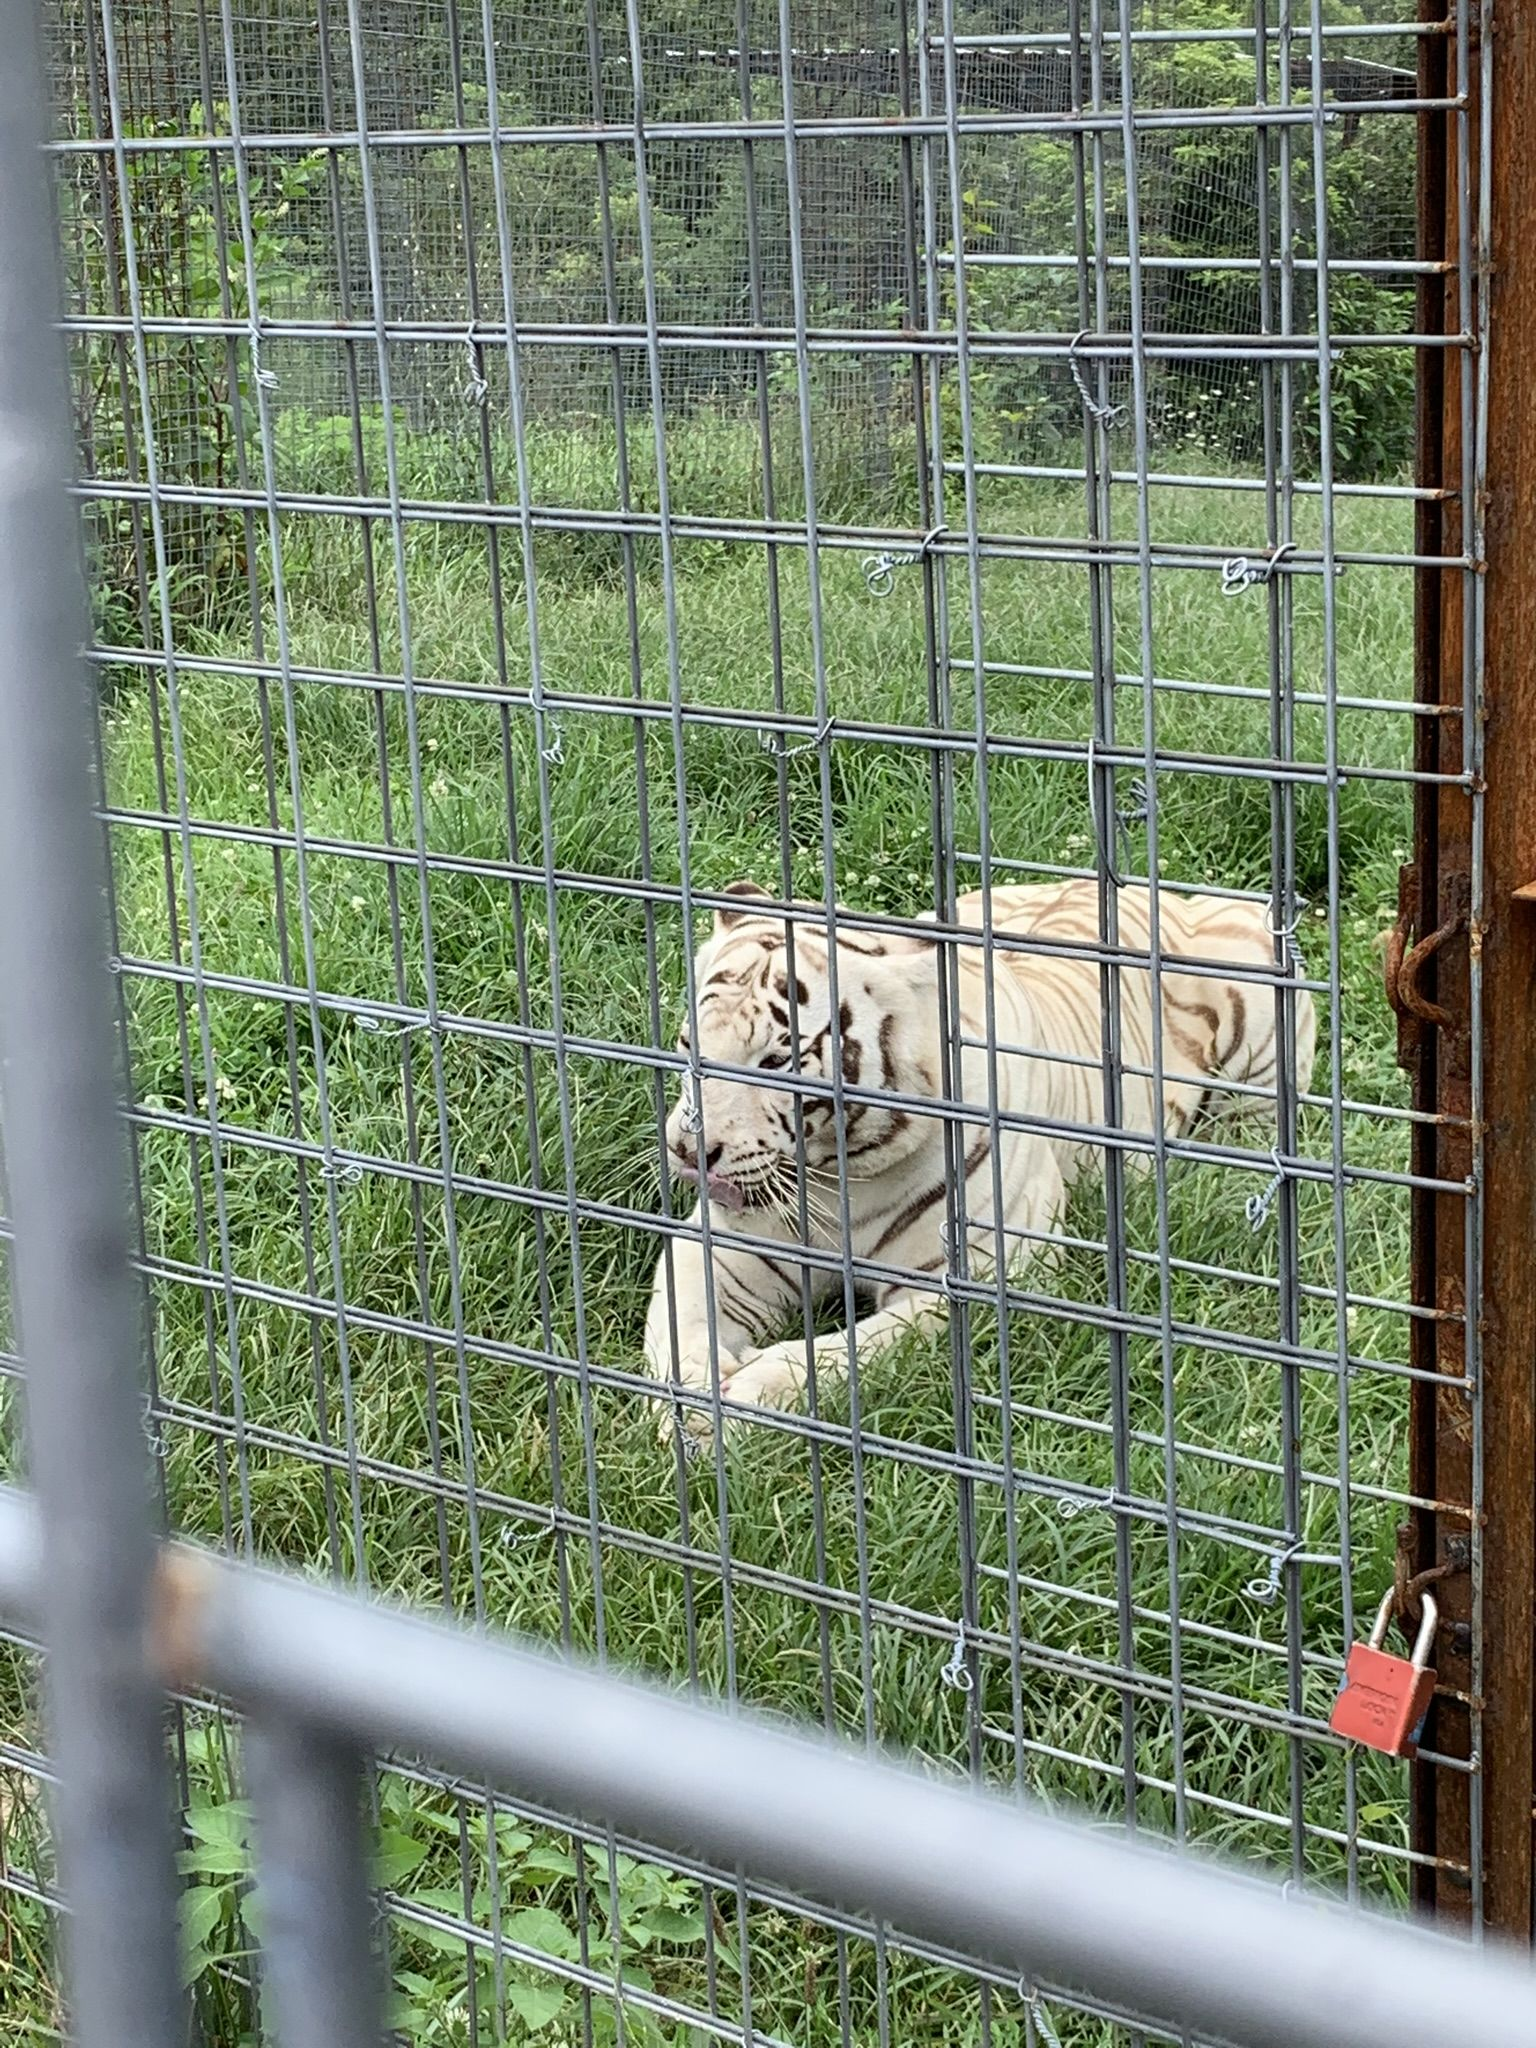 White Tiger at the National Tiger Sanctuary in Branson